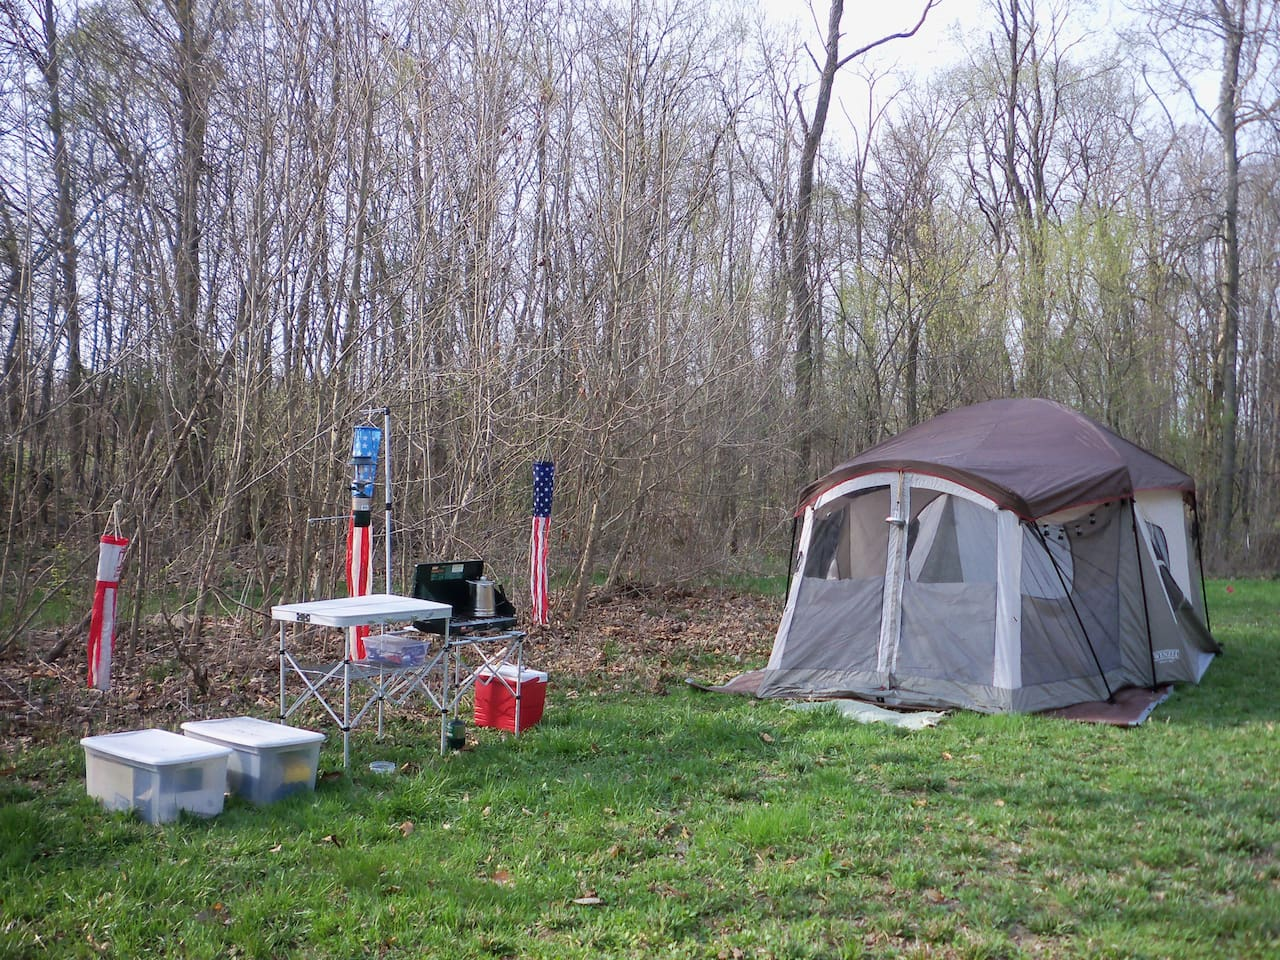 A campsite set up for you! Tent, cook stove, 2 coolers, cookware & dinnerware. Air mattress and bedding is included.